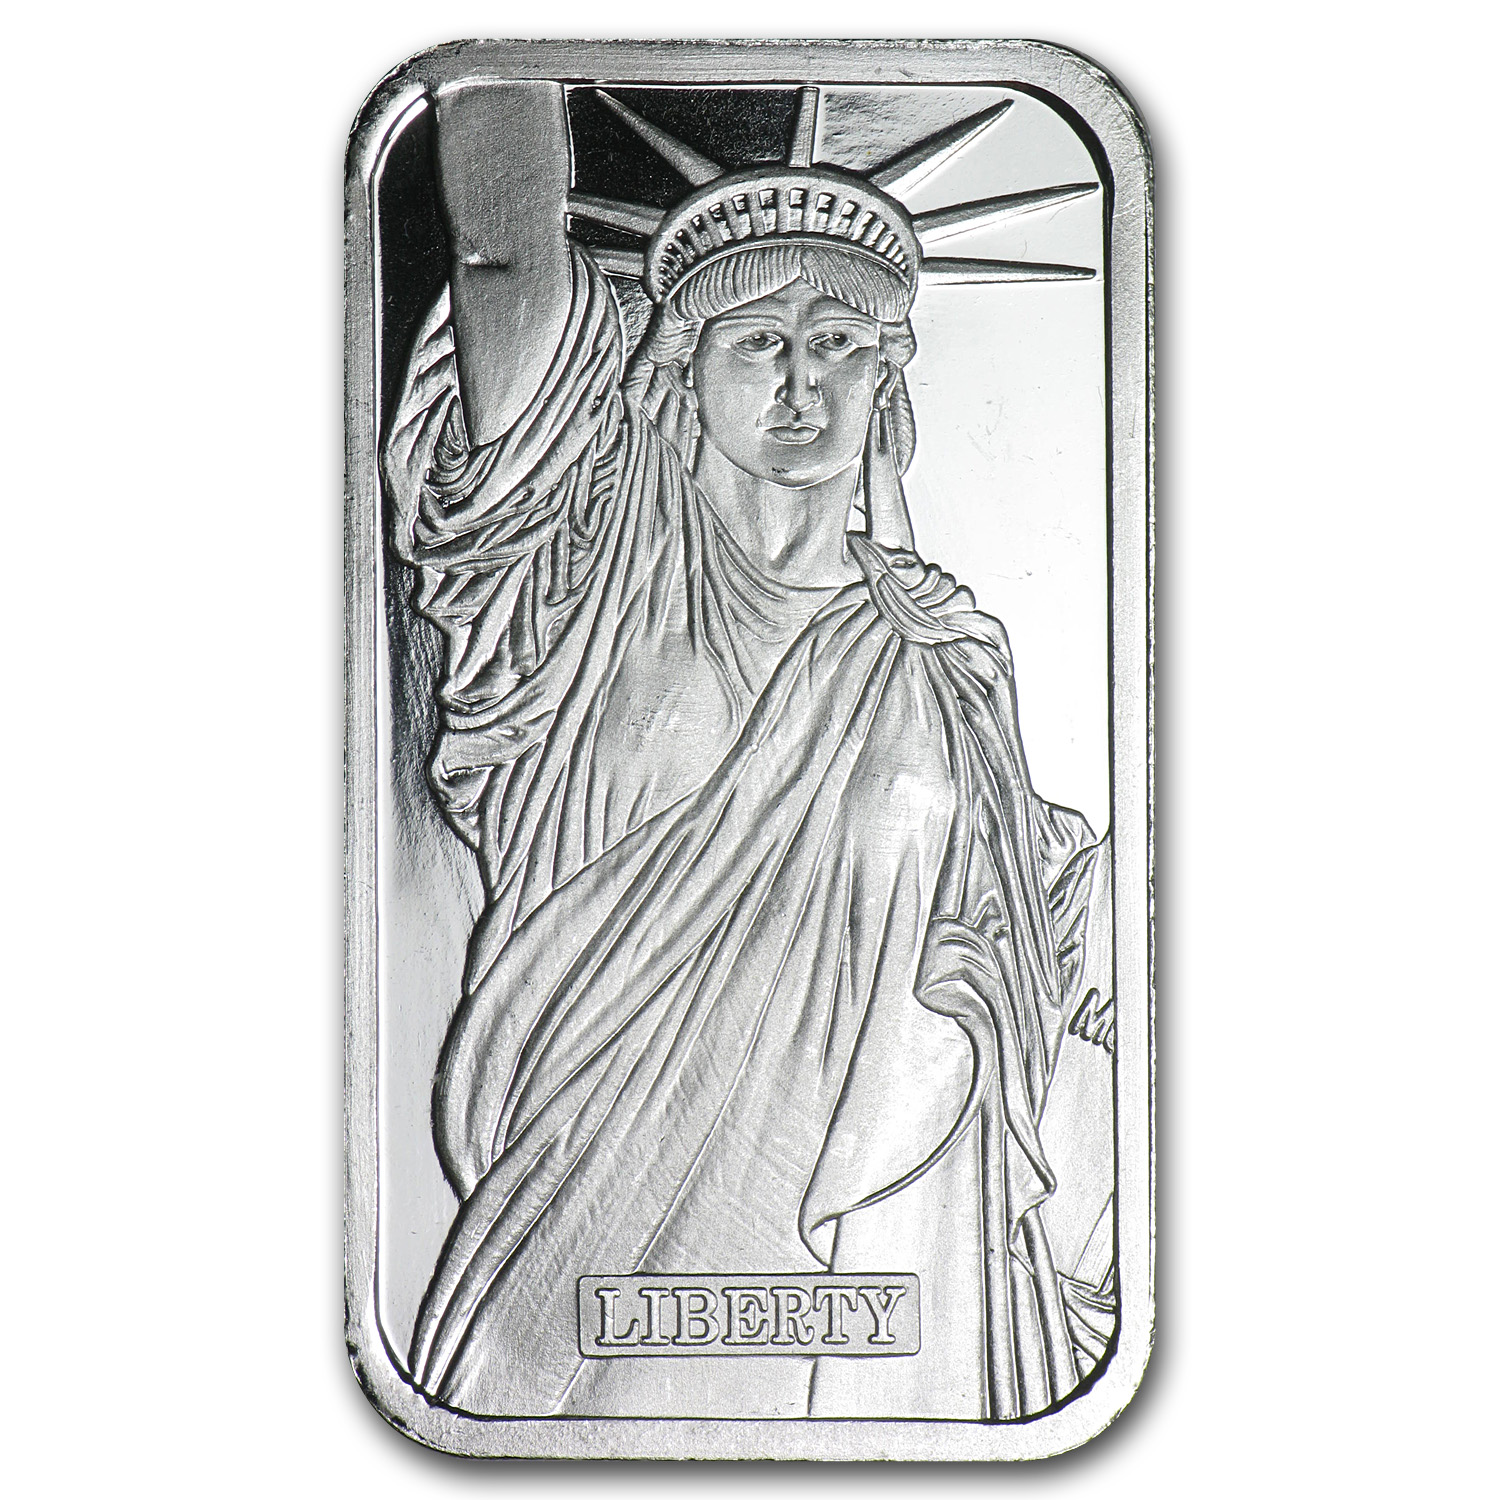 1 oz Silver Bar - Johnson Matthey (Statue of Liberty/MTB)